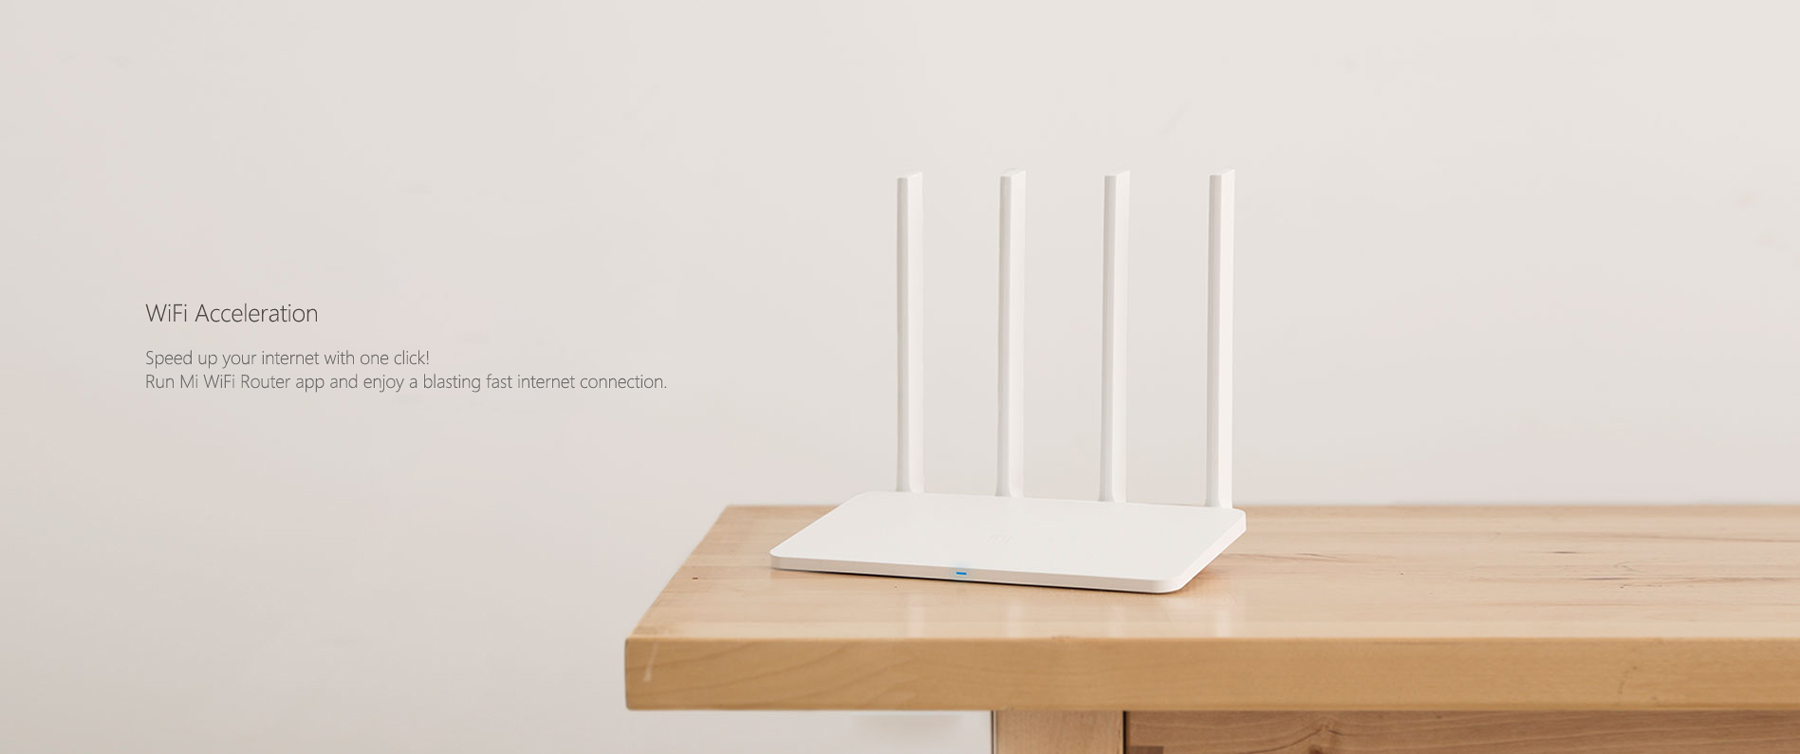 Original Xiaomi Mi 300Mbps 2.4GHz WiFi Router 3C Signal Booster with 4 Antenna Chinese Version- White Chinese Plug